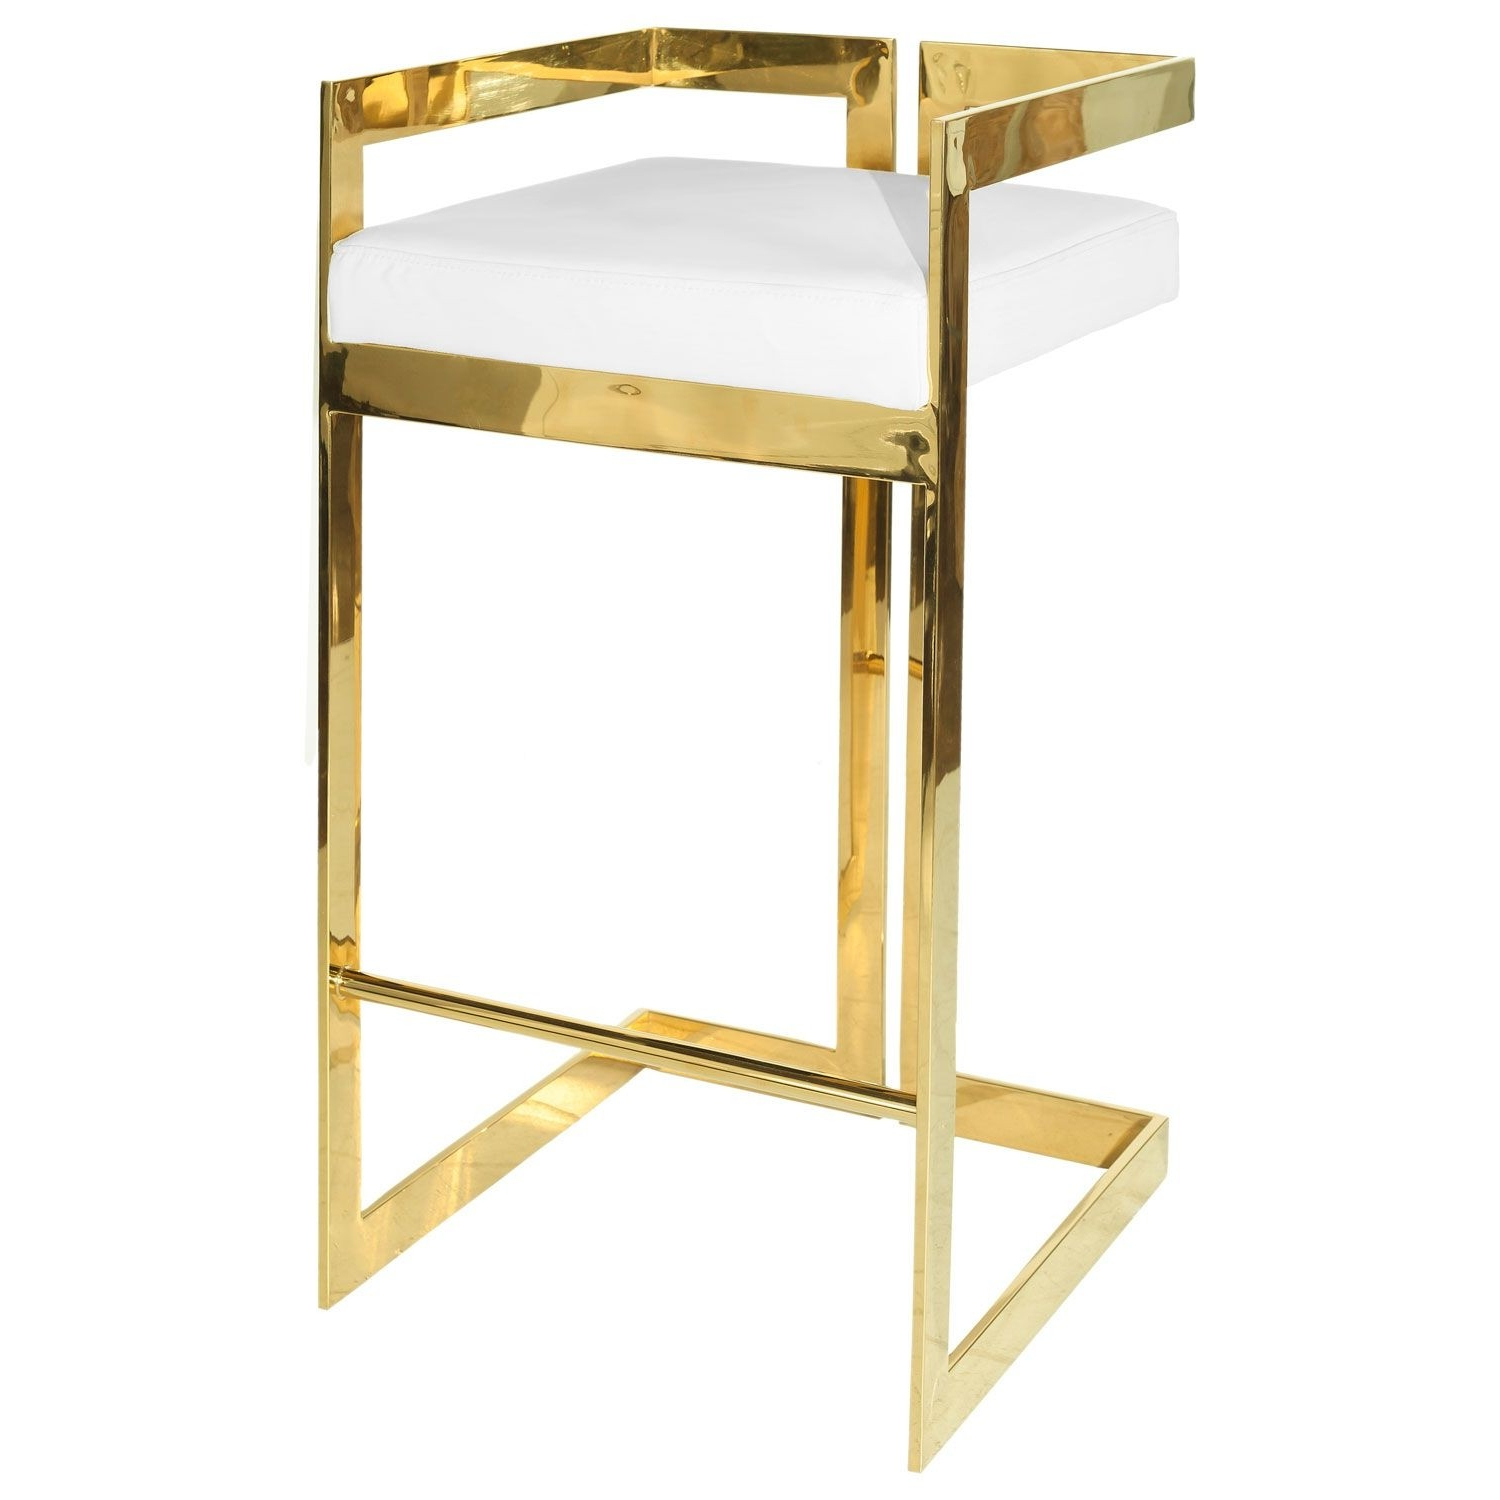 Preferred Hearst Bar Tables Intended For Hearst Brass & White Pu Leather Bar Stool (Seconds) (View 6 of 25)